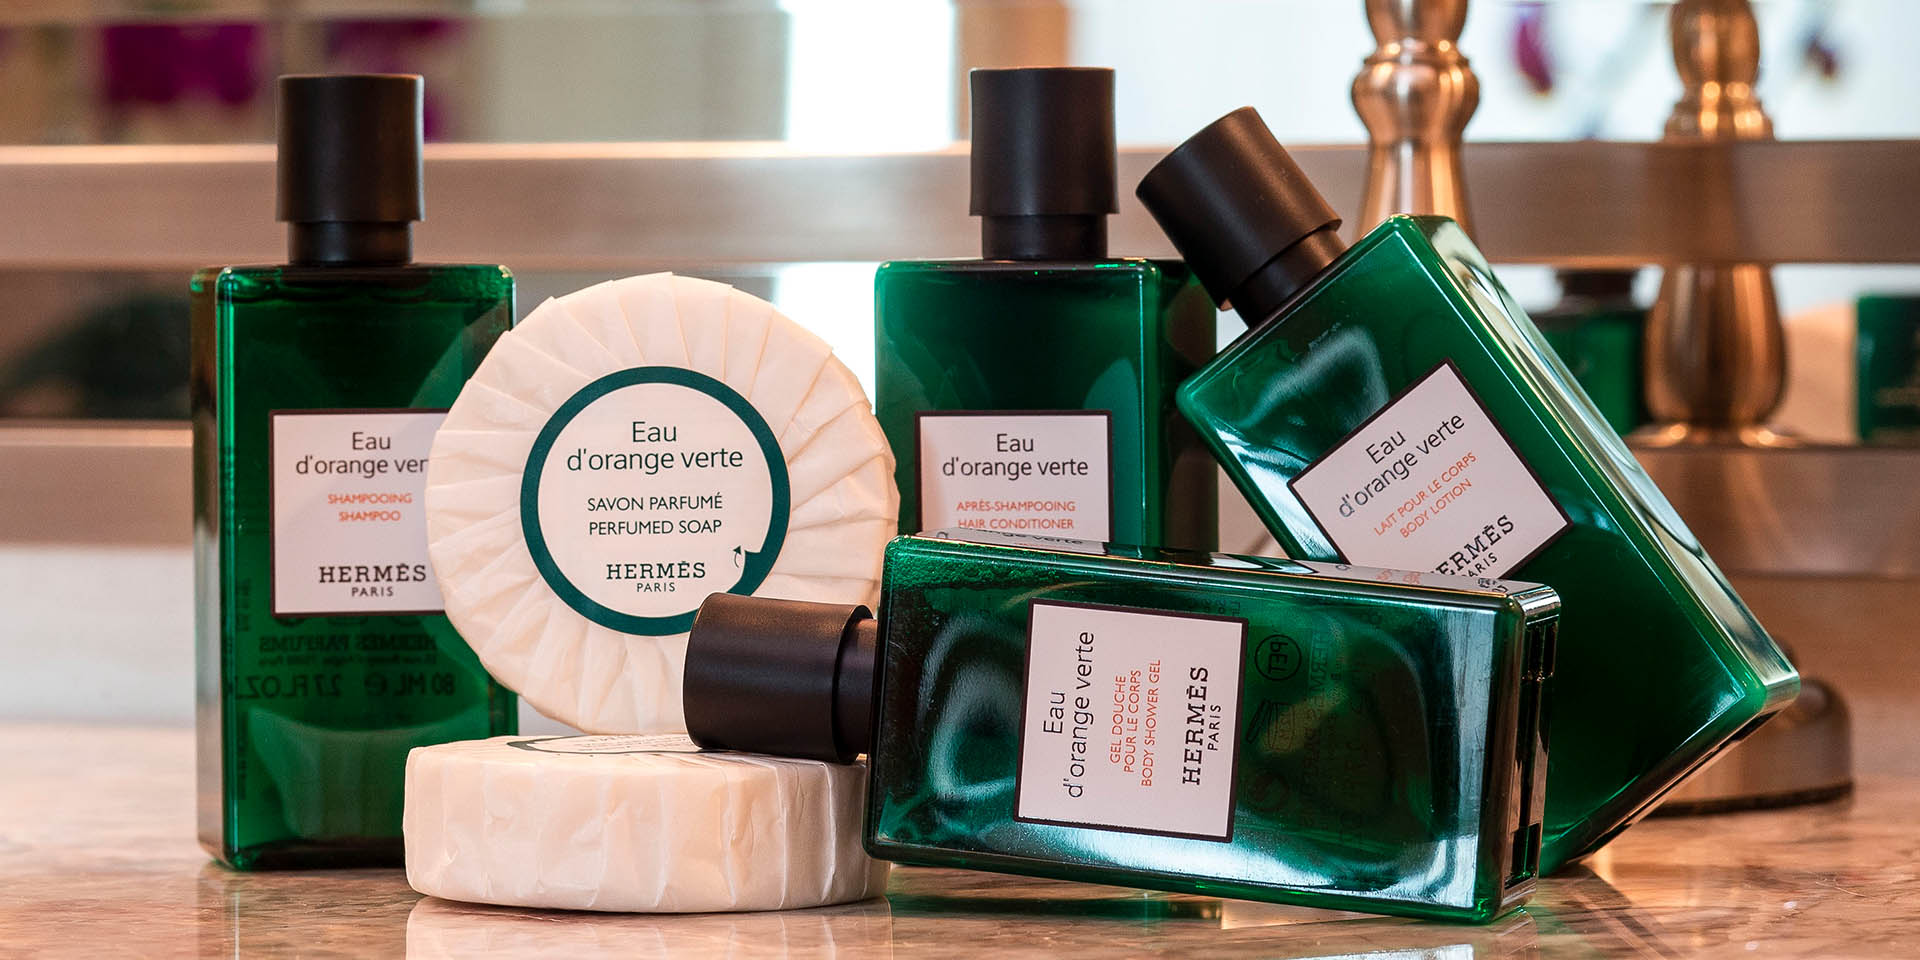 Luxury bathroom amenities from HERMES